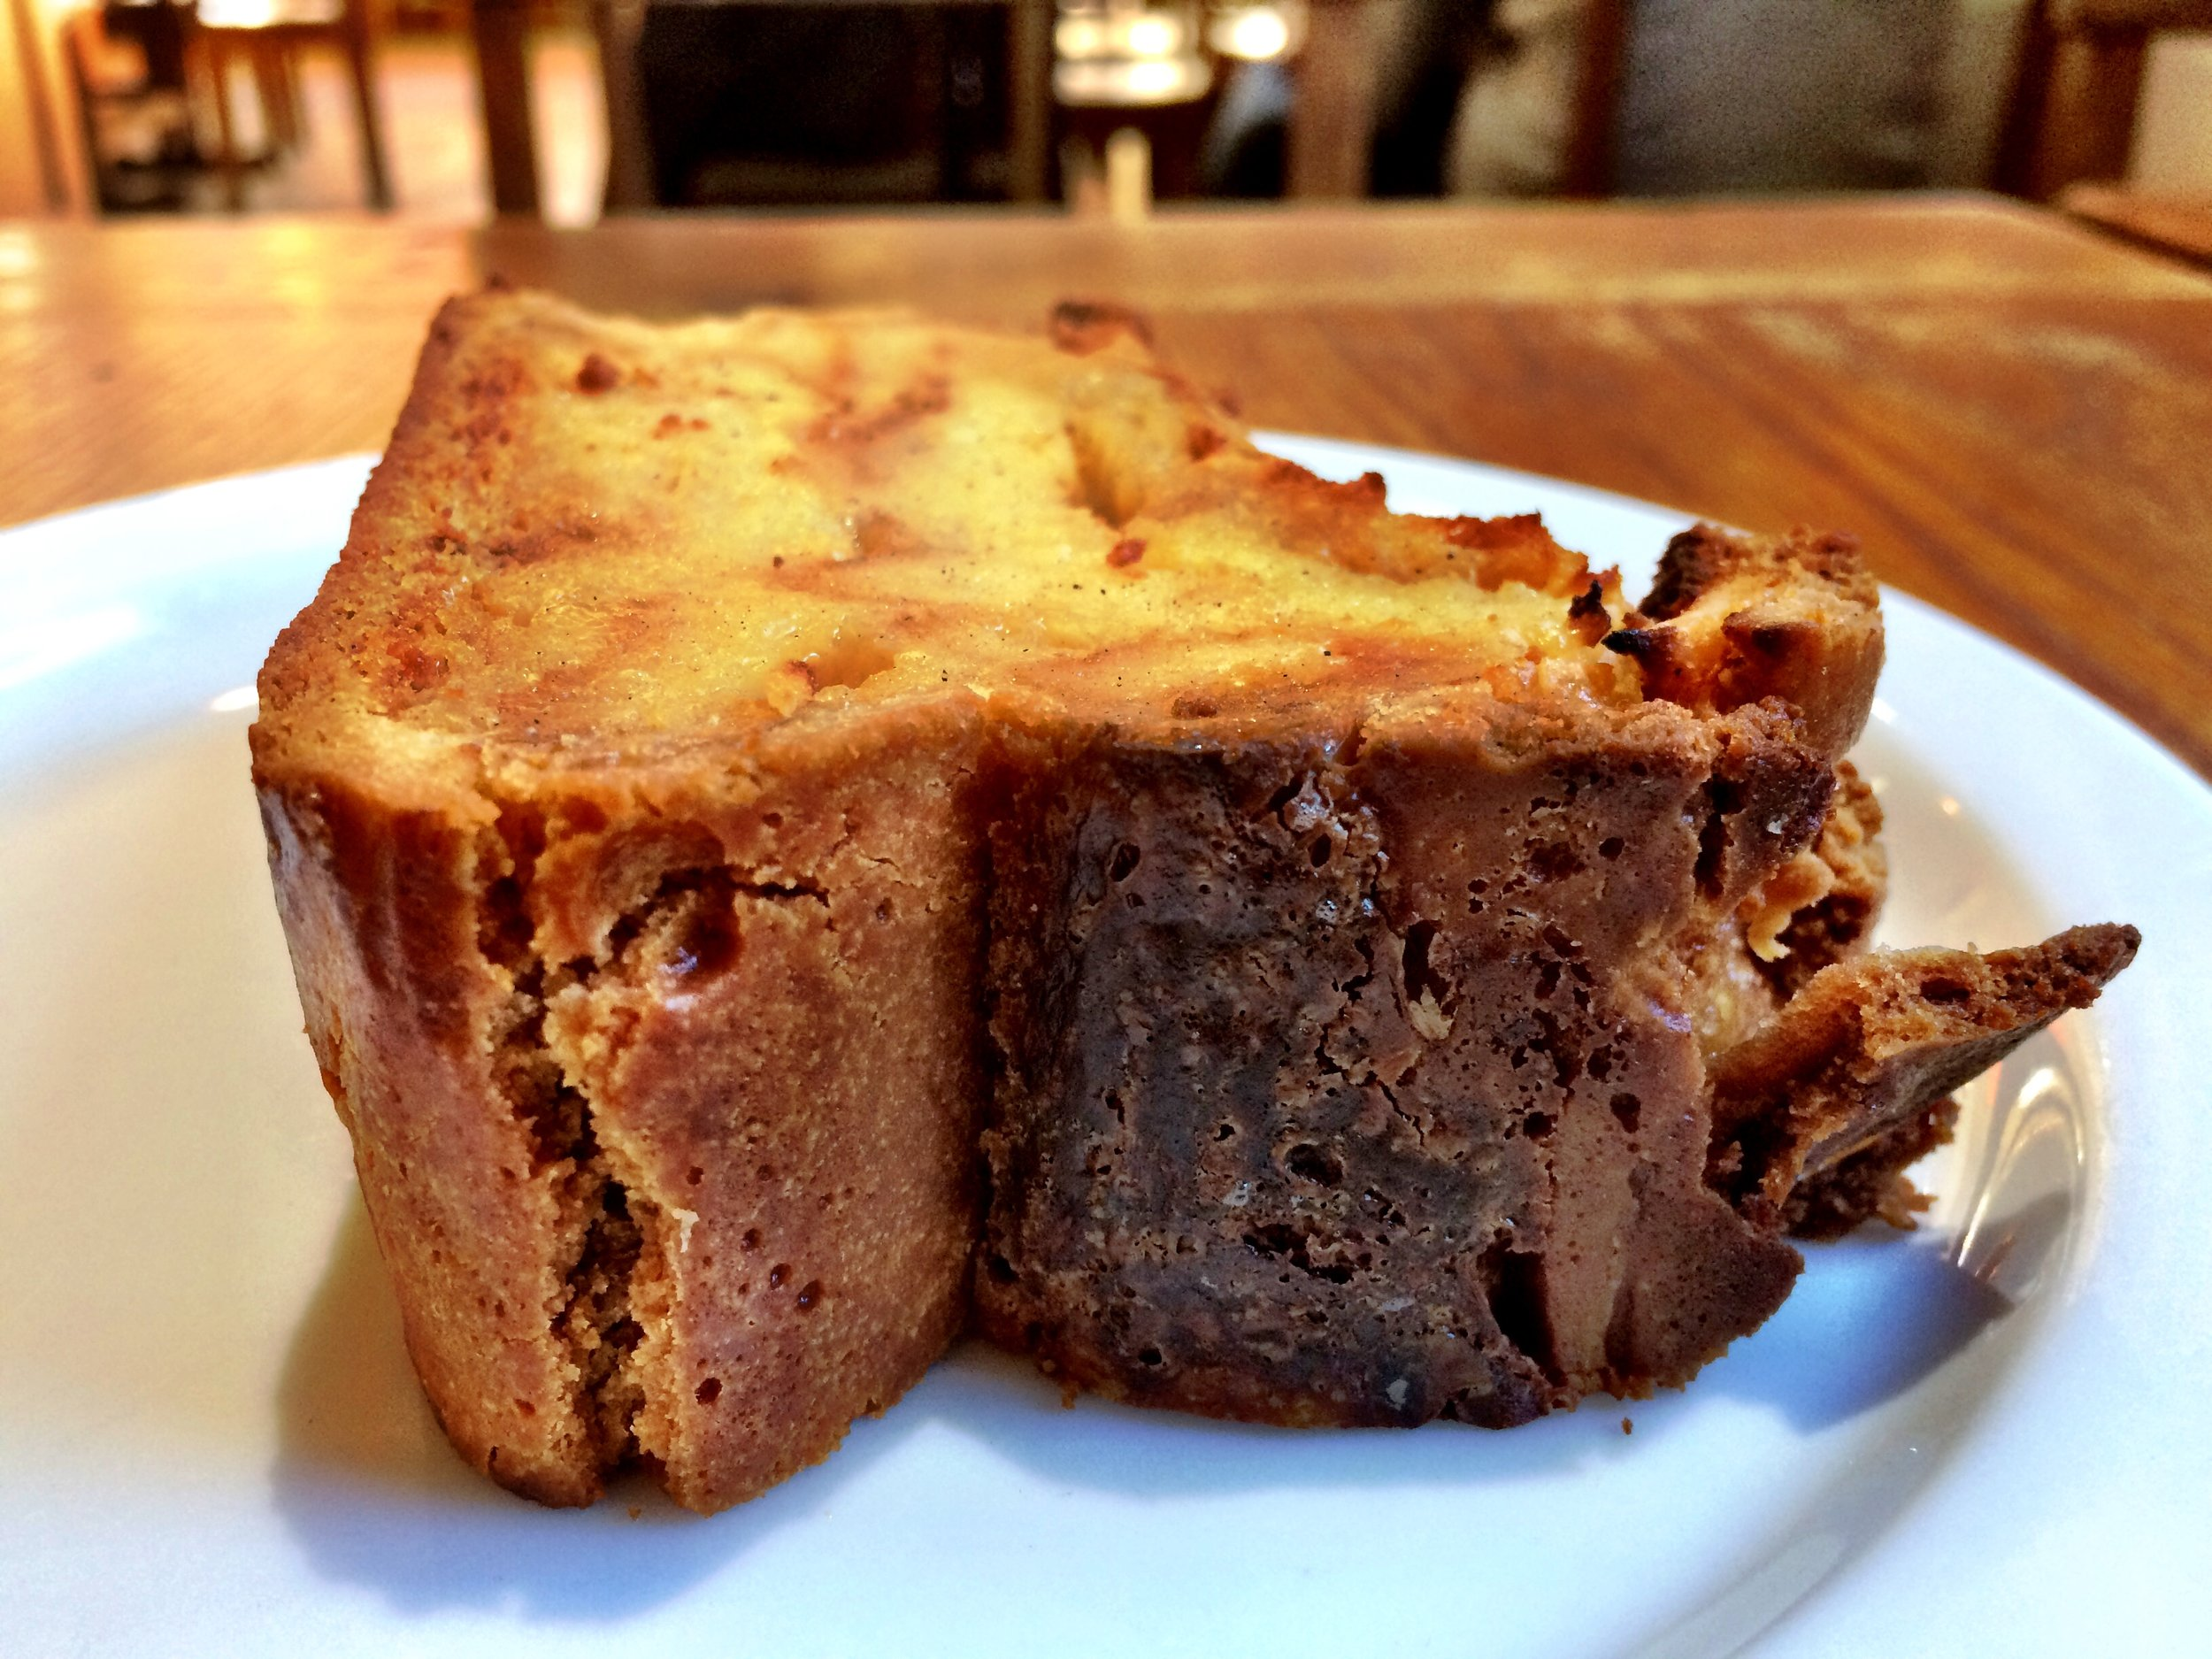 Don't be too hard on yourself as you embark on the journey of intermittent fasting. As long as you are choosing to eat right 90% of the time, it's ok to indulge in your favorite treats once in awhile. I certainly do. Like this heavenly slice of bread pudding from La Boulangerie in San Francisco.